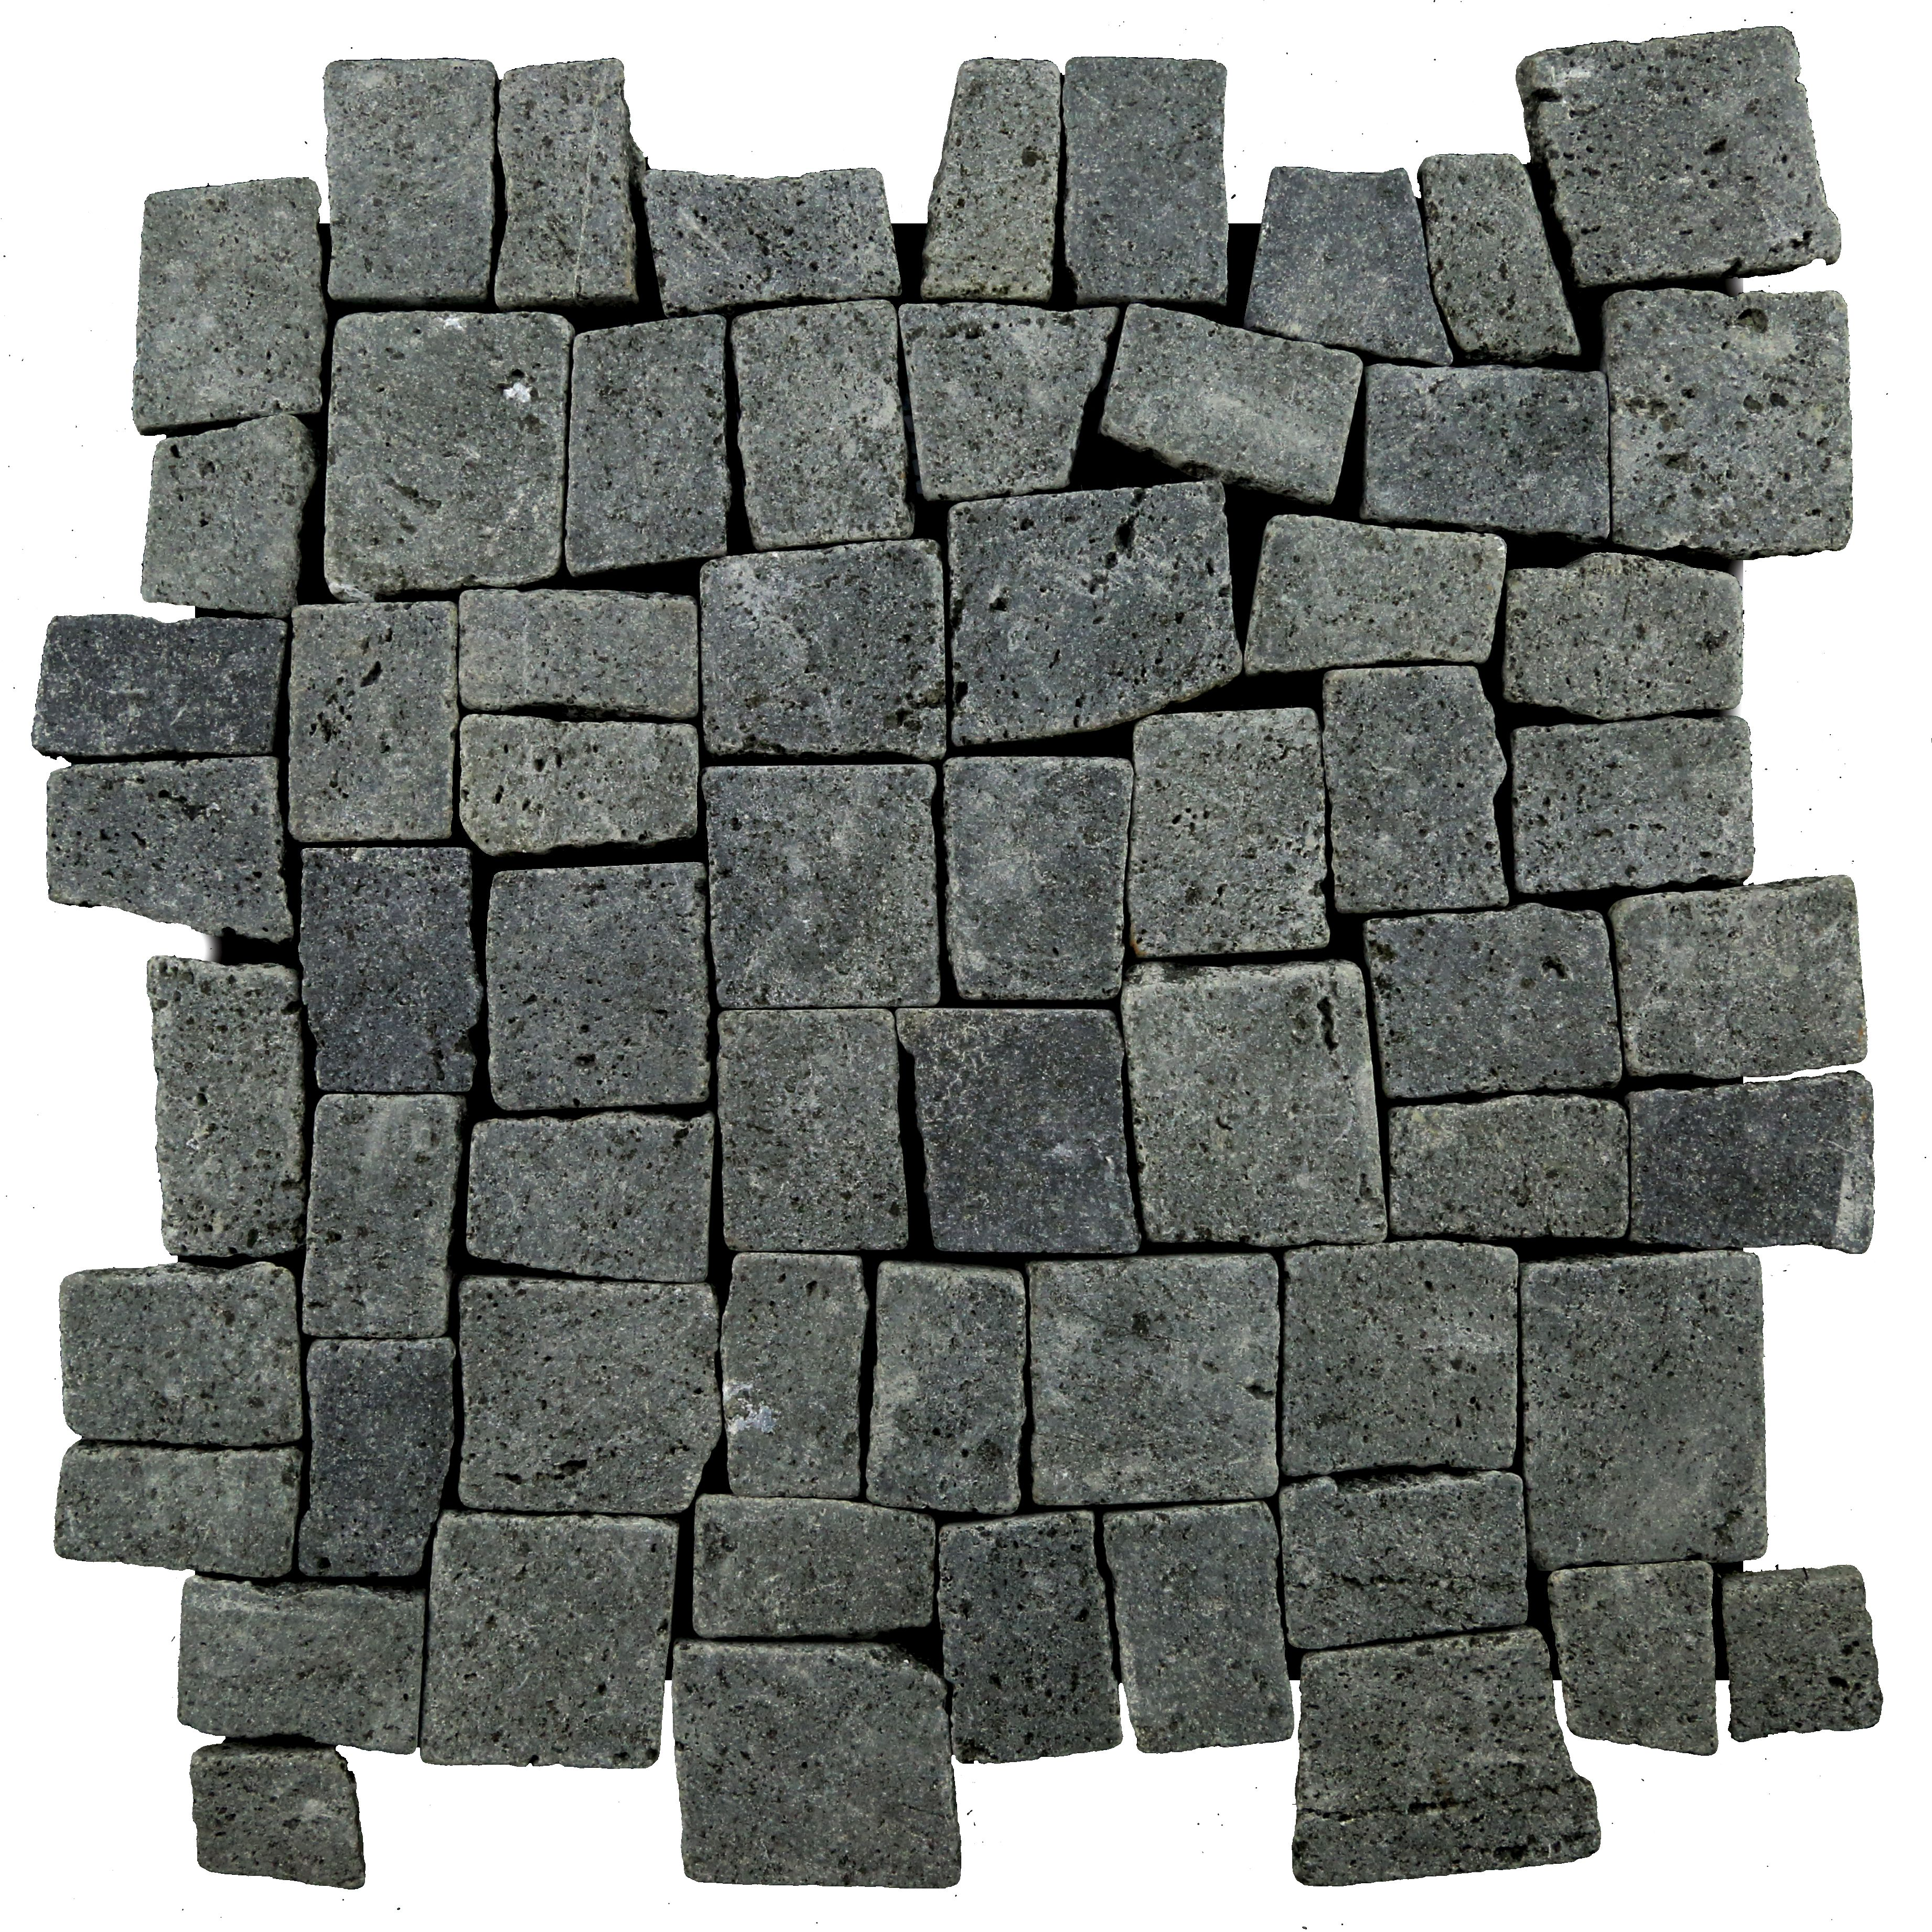 Easy To Install Mesh Backed Interlocking Natural Stone Tile Made Out Of High Quality Indonesian Black Basa Pebble Mosaic Tile Pebble Tile Natural Stone Tile